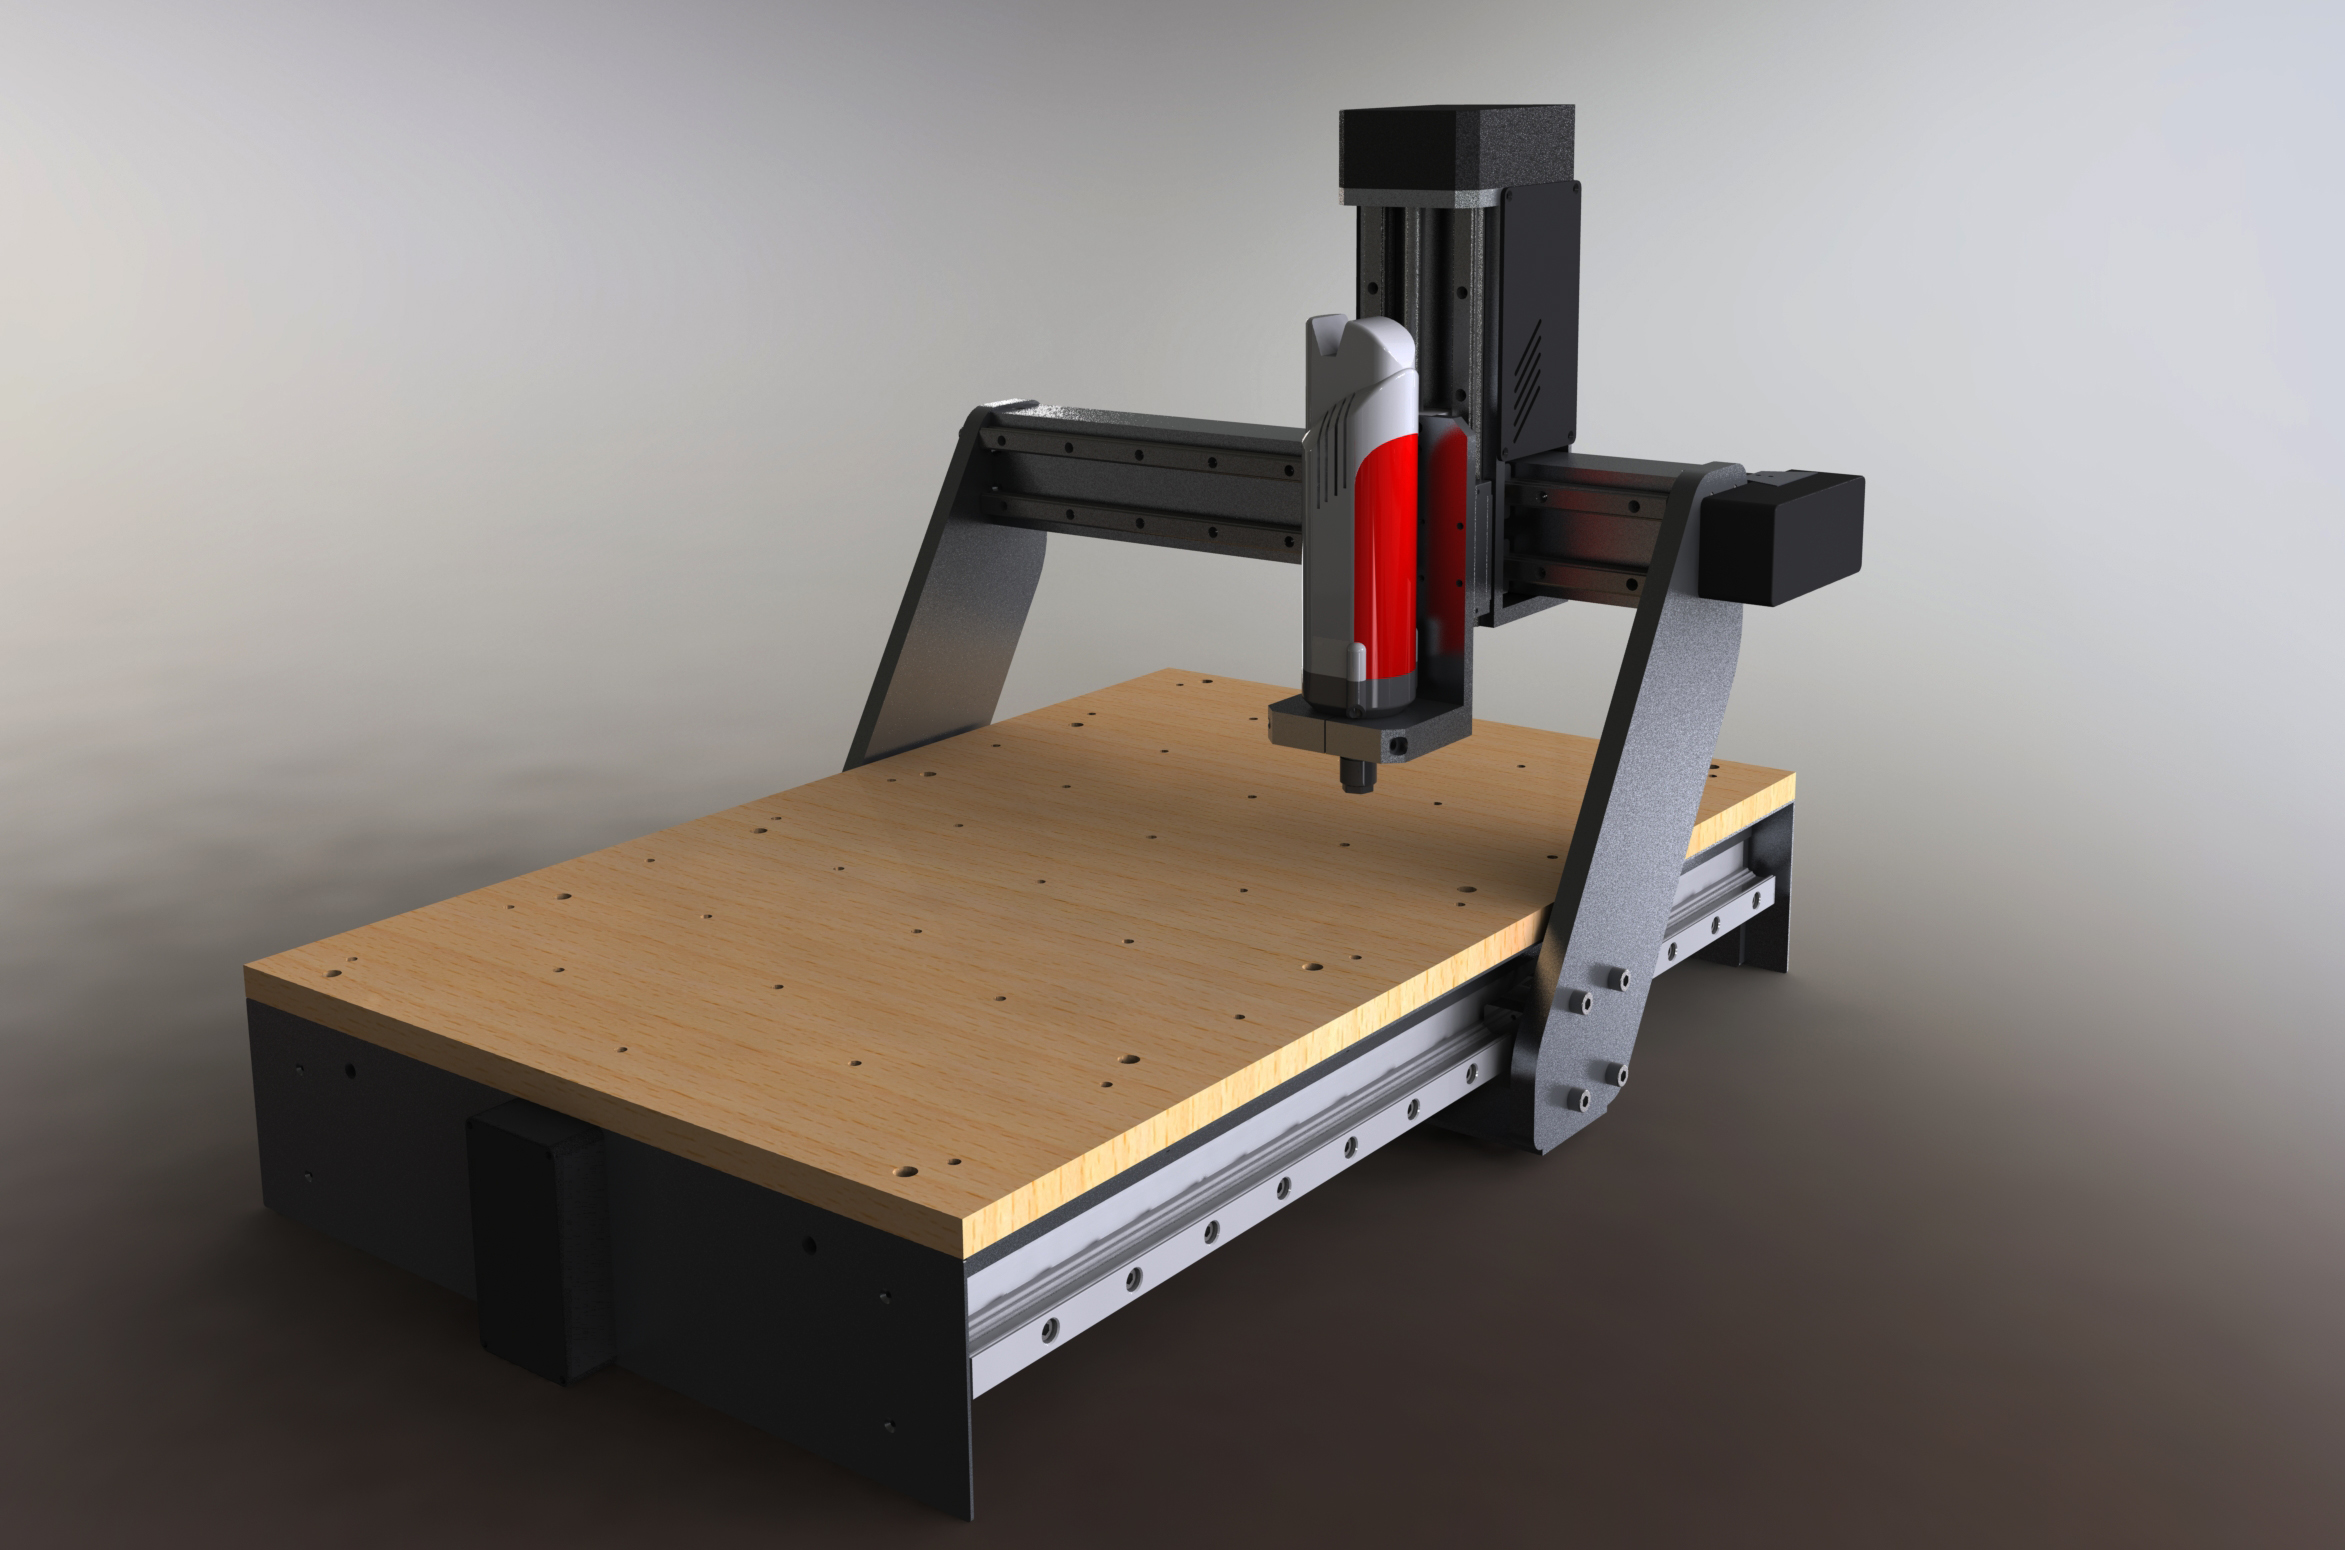 Picture of The Design and CAD Model